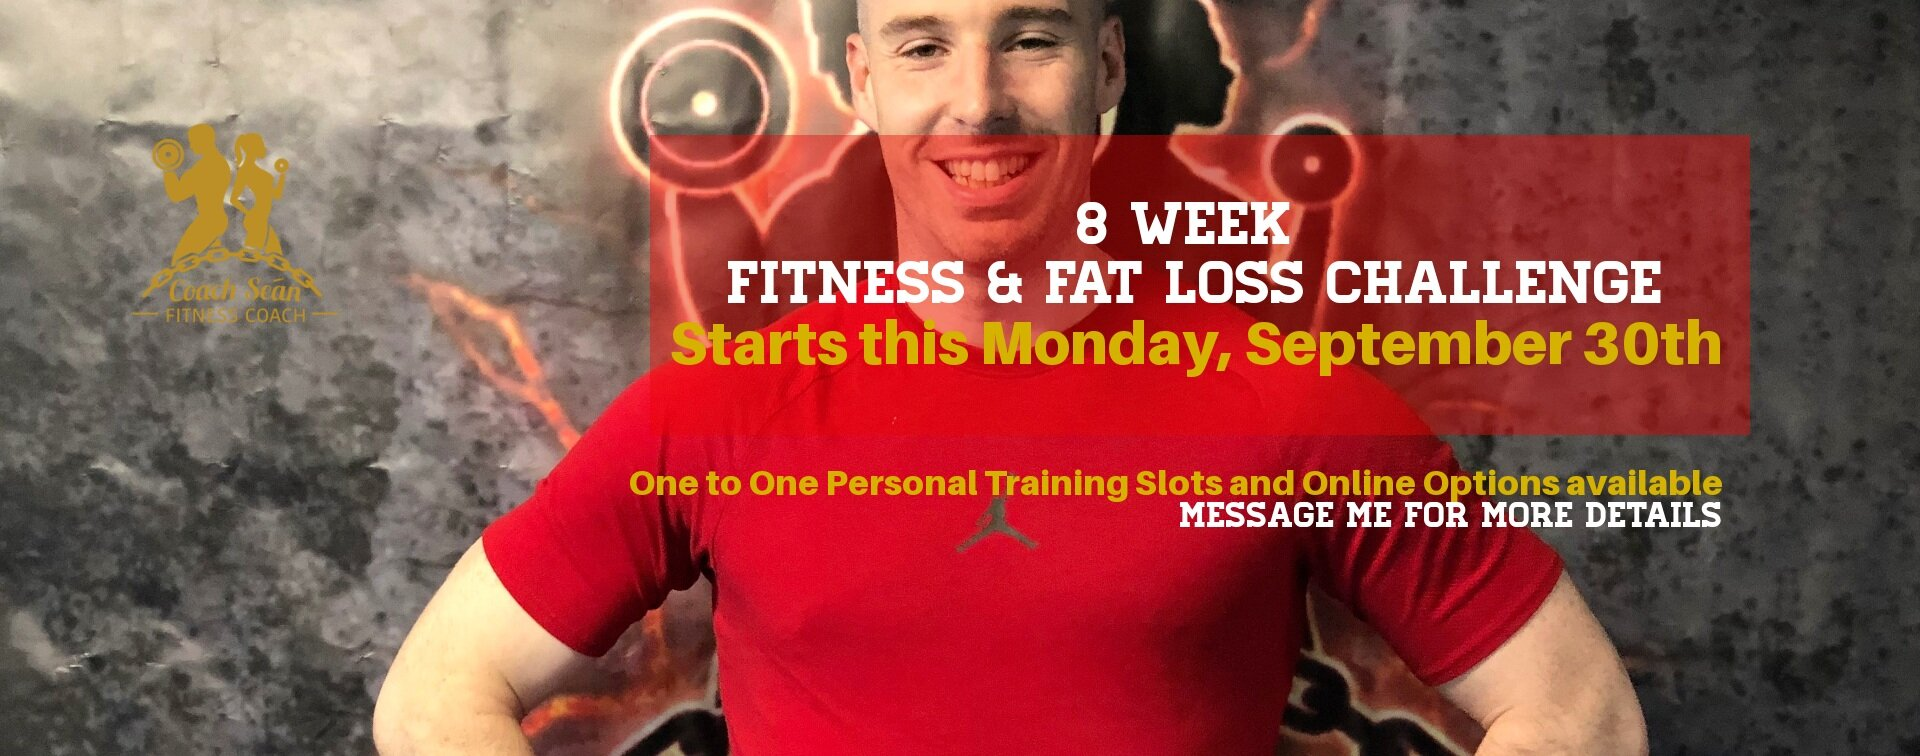 8 week fitness and fat loss transformation challenge coach sean lucan dublin online fitness personal trainer training